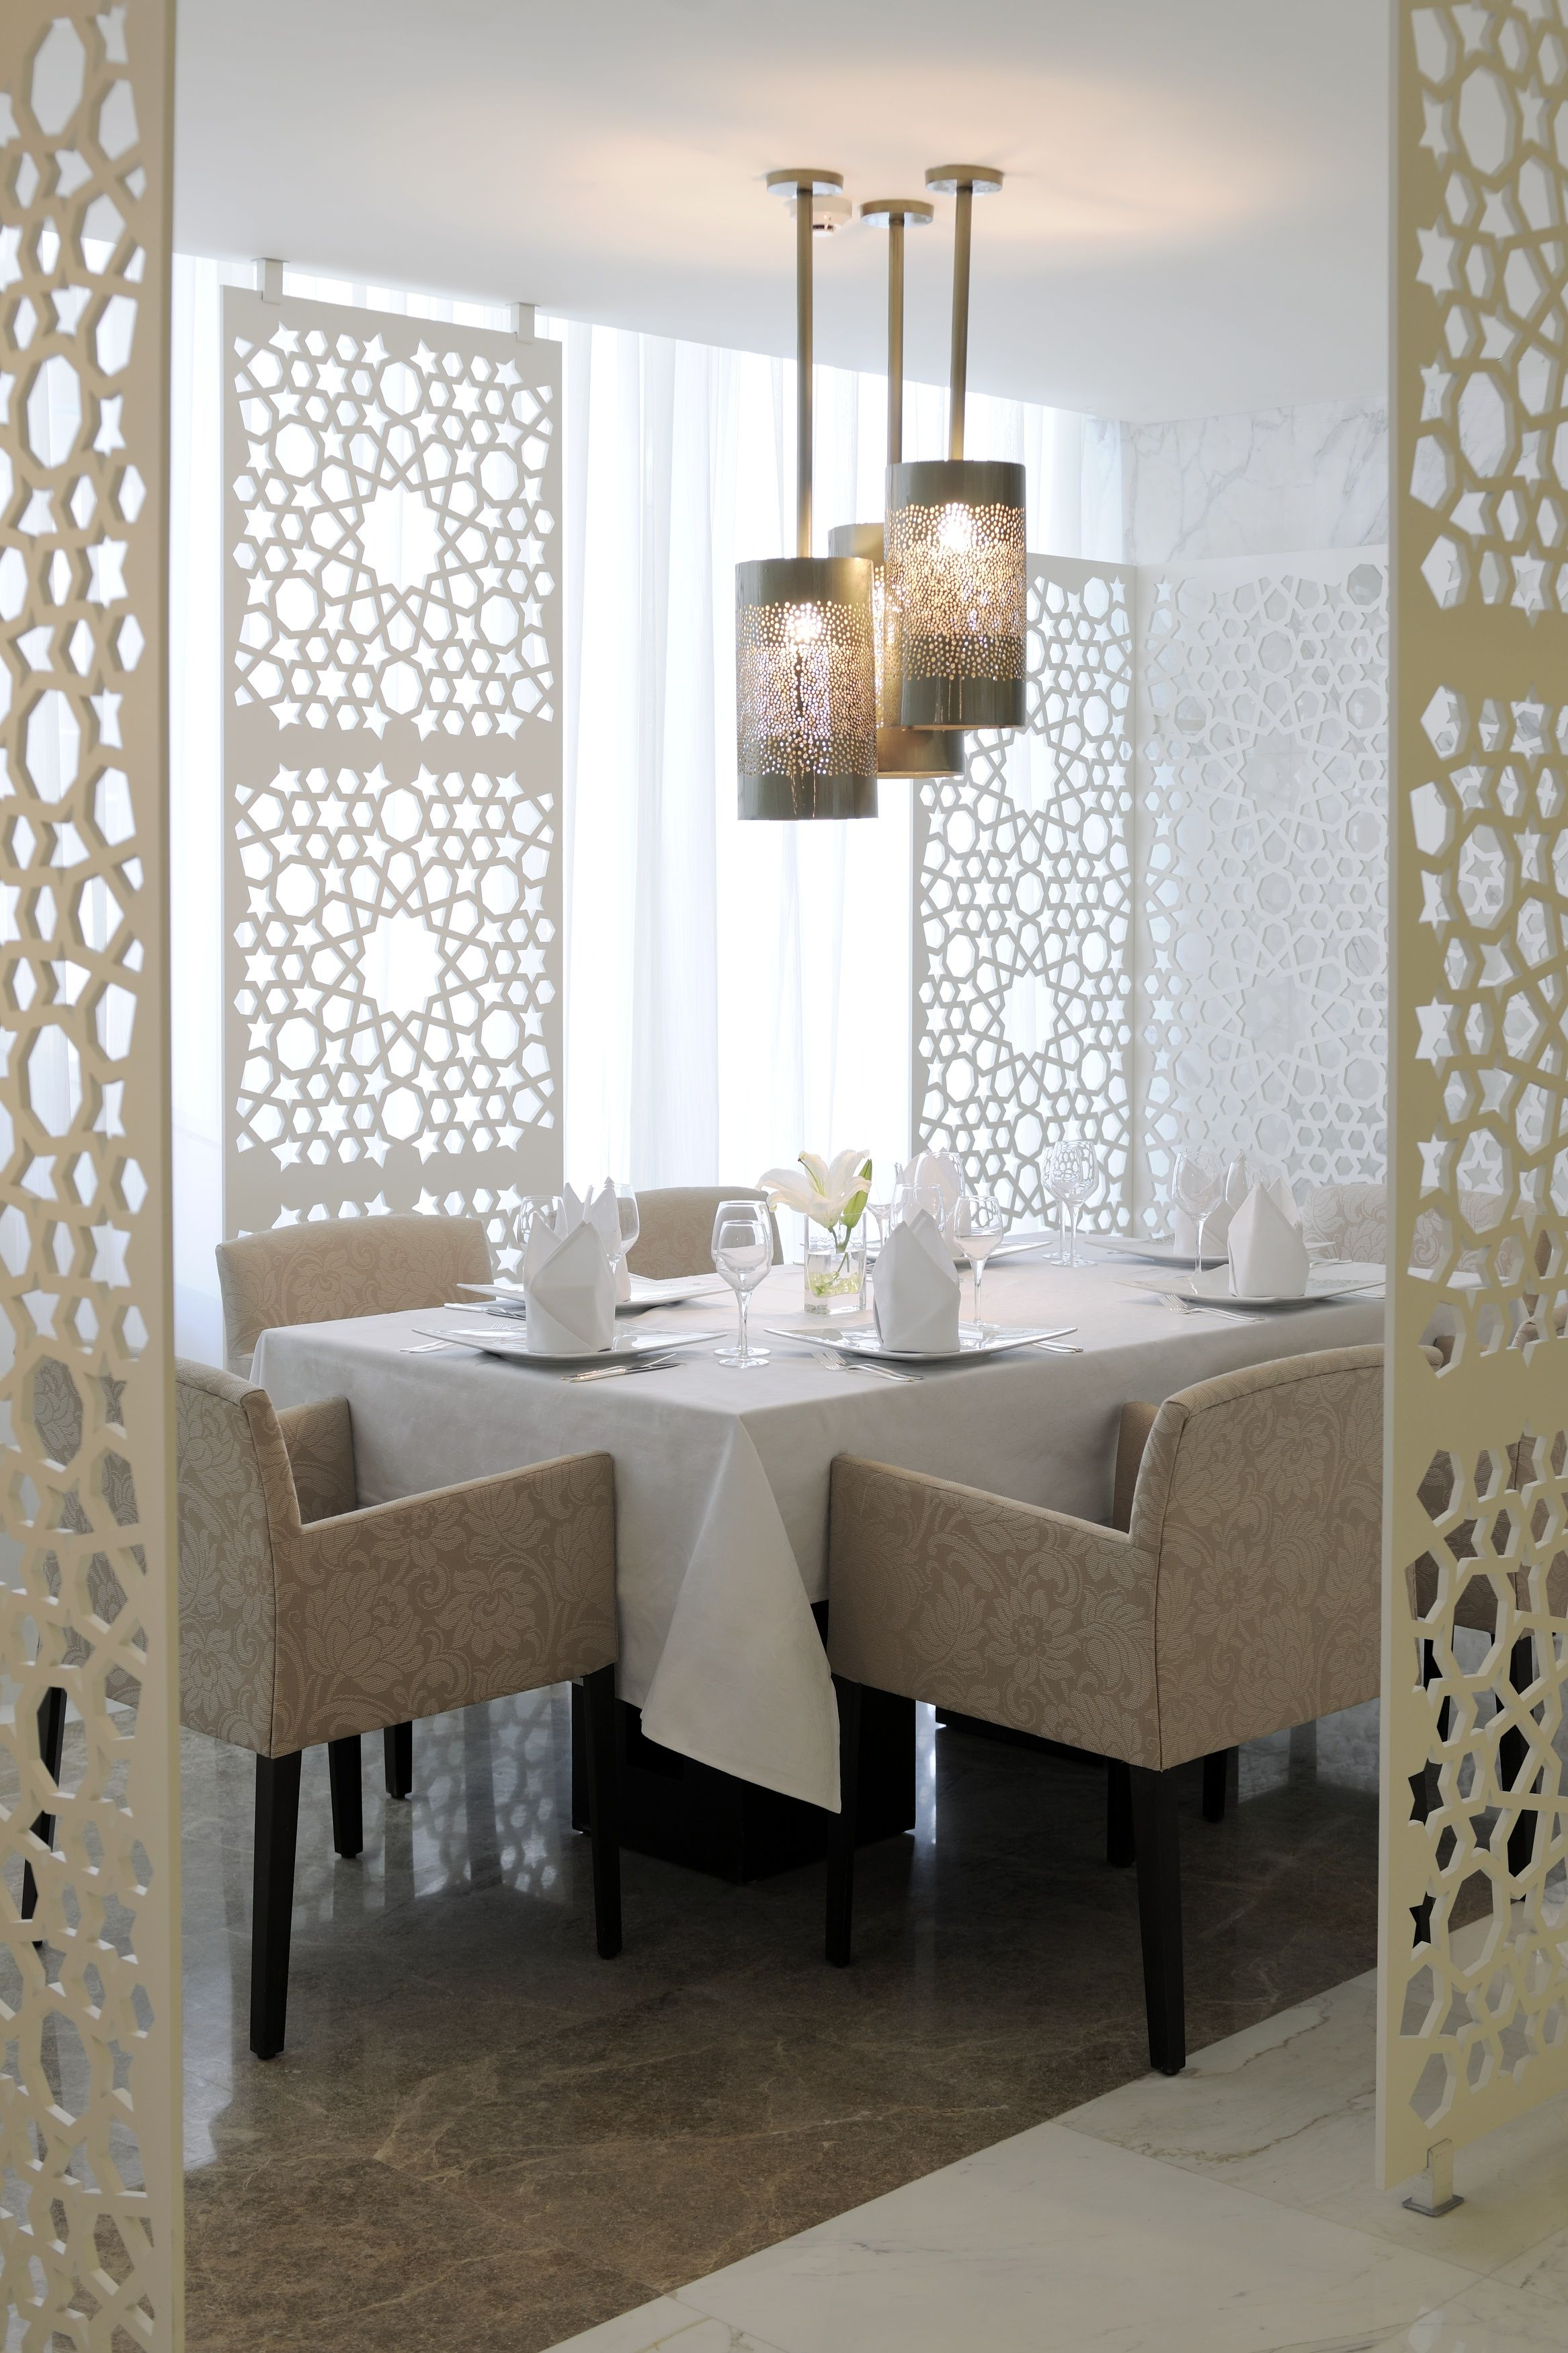 arabic restaurant serving arabic gulf food. concept and design